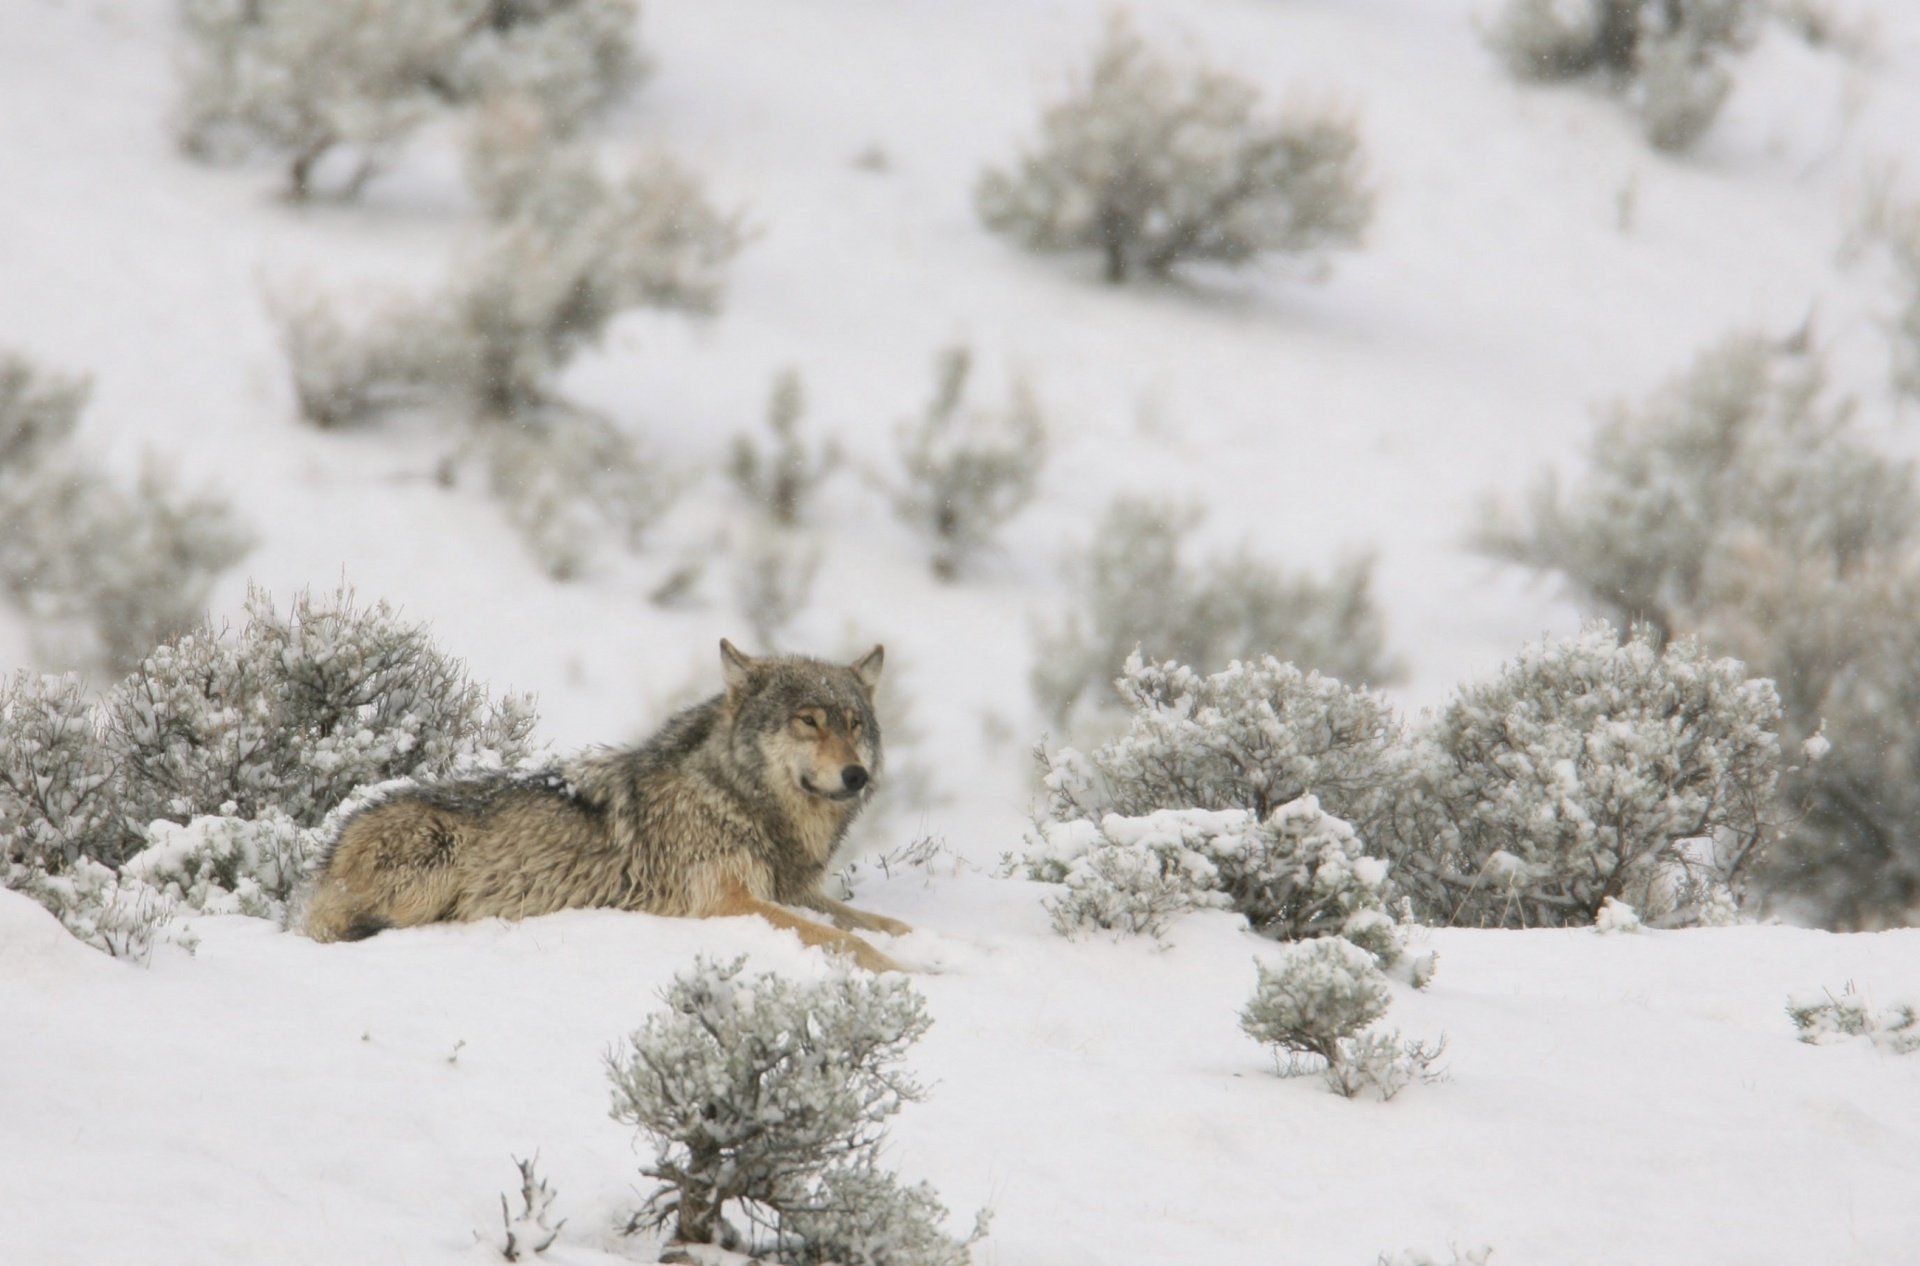 Gray Wolves were listed as endangered in the lower 48 states in 1975. In early March, the Fish and Wildlife Service proposed delisting them. Photo by Jean